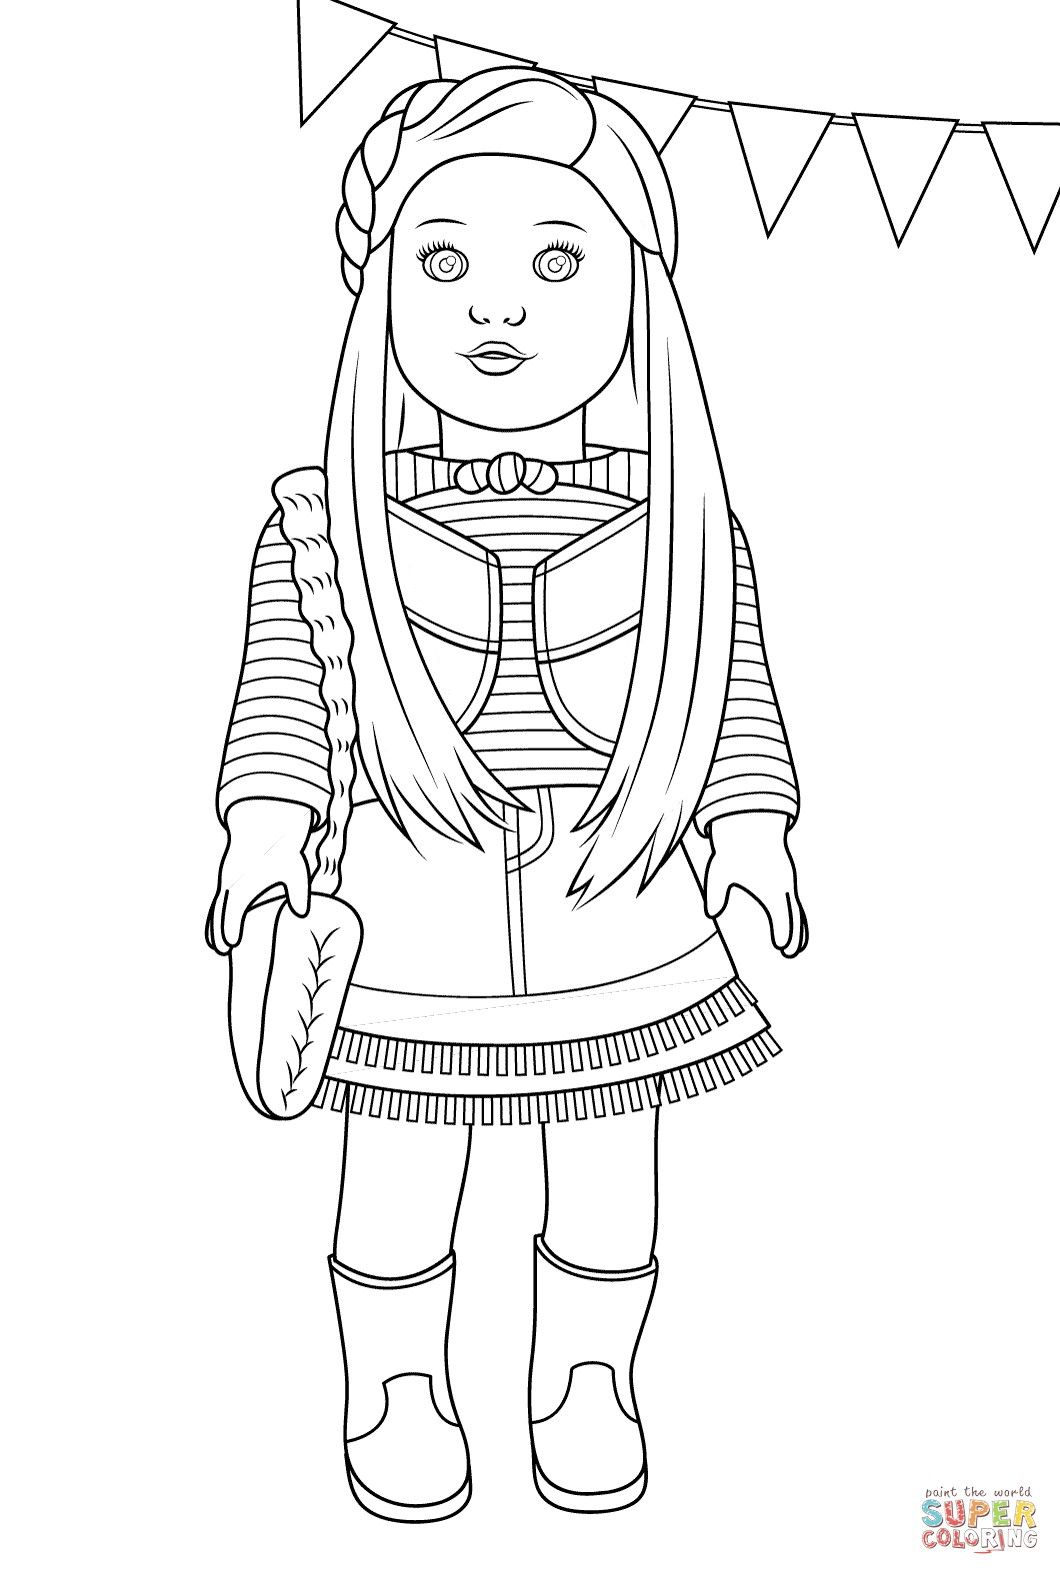 American Girl Coloring Pages Free – From the thousand photographs on ...